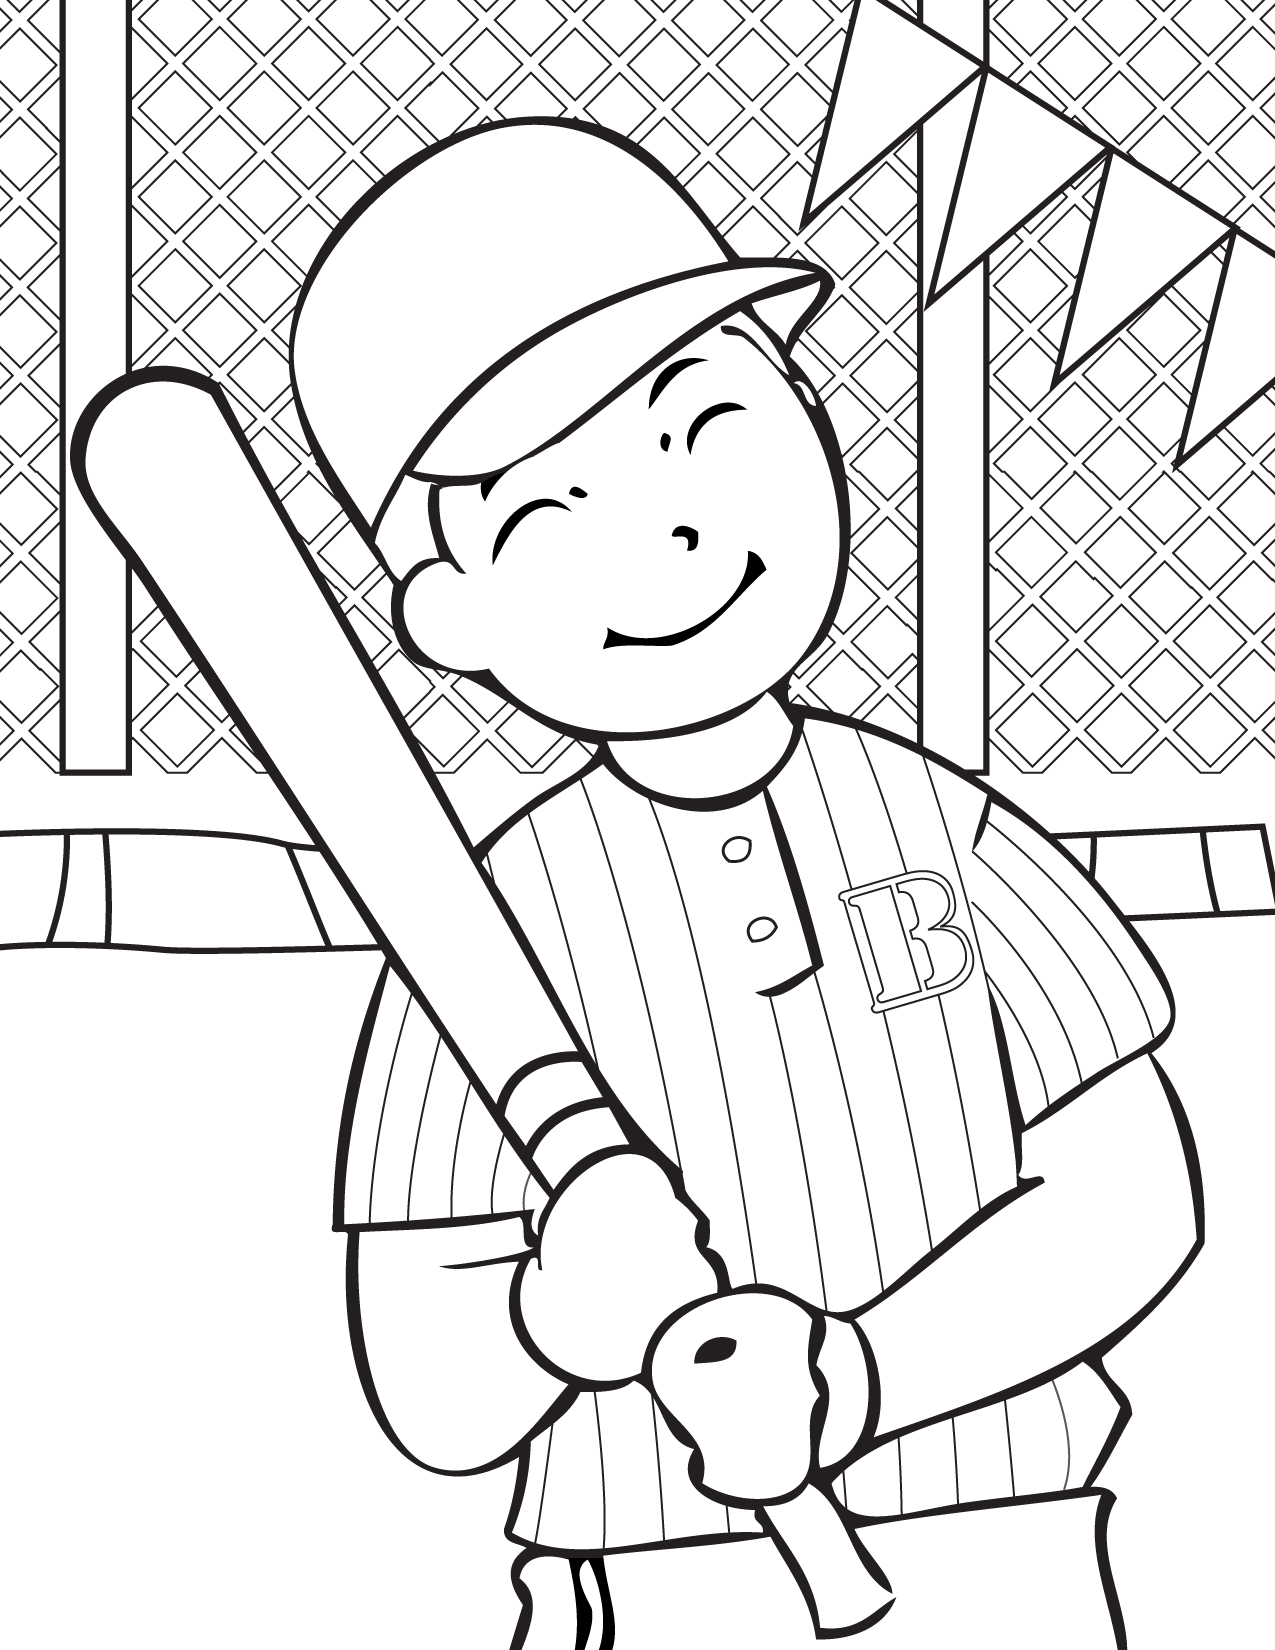 1275x1650 sports coloring pages page 2 of 2 got coloring pages - Free Coloring Pages Baseball 2